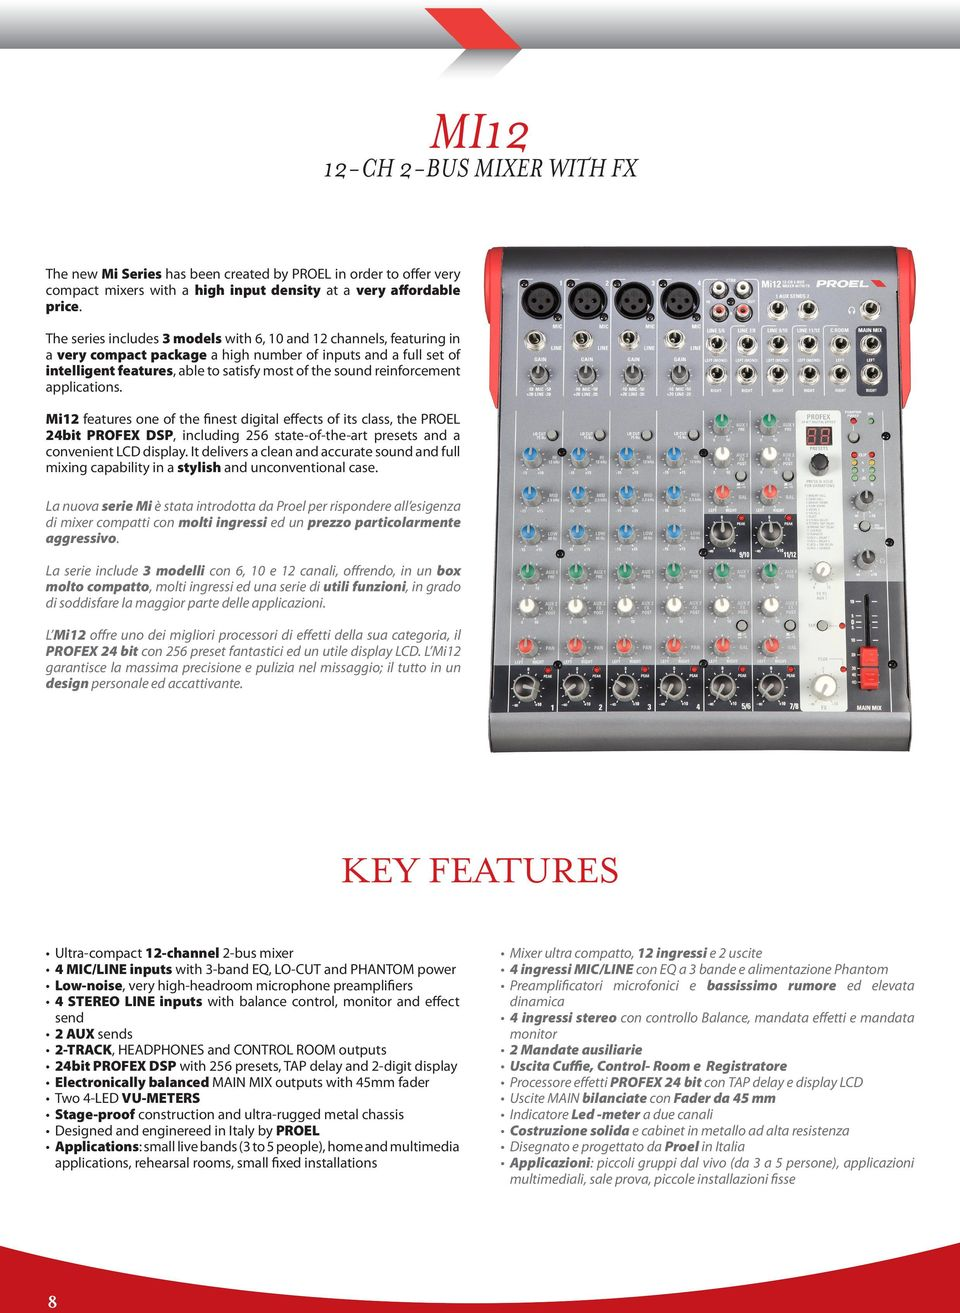 reinforcement applications. Mi12 features one of the finest digital effects of its class, the PROEL 24bit PROFEX DSP, including 256 state-of-the-art presets and a convenient LCD display.